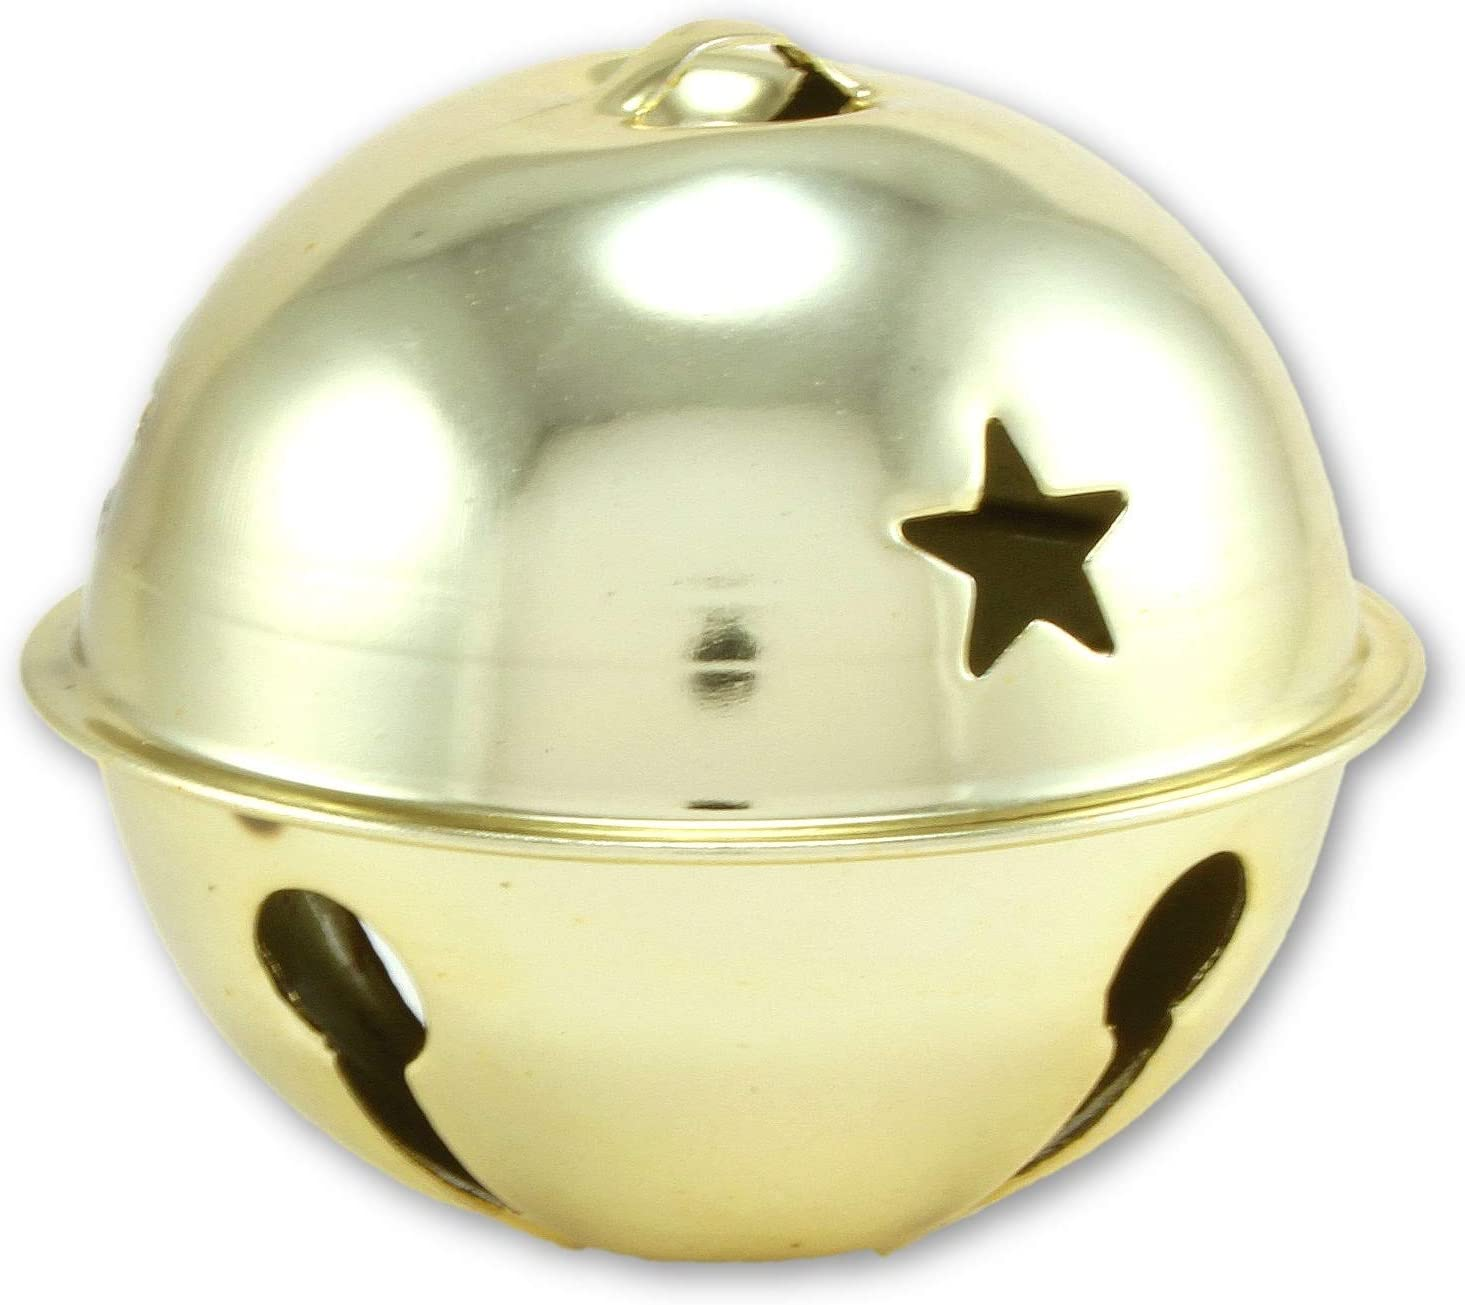 6 Gold Jingle Bells 2.75 Inch 70mm With Star Cut Outs Jumbo Large Wreath Holiday